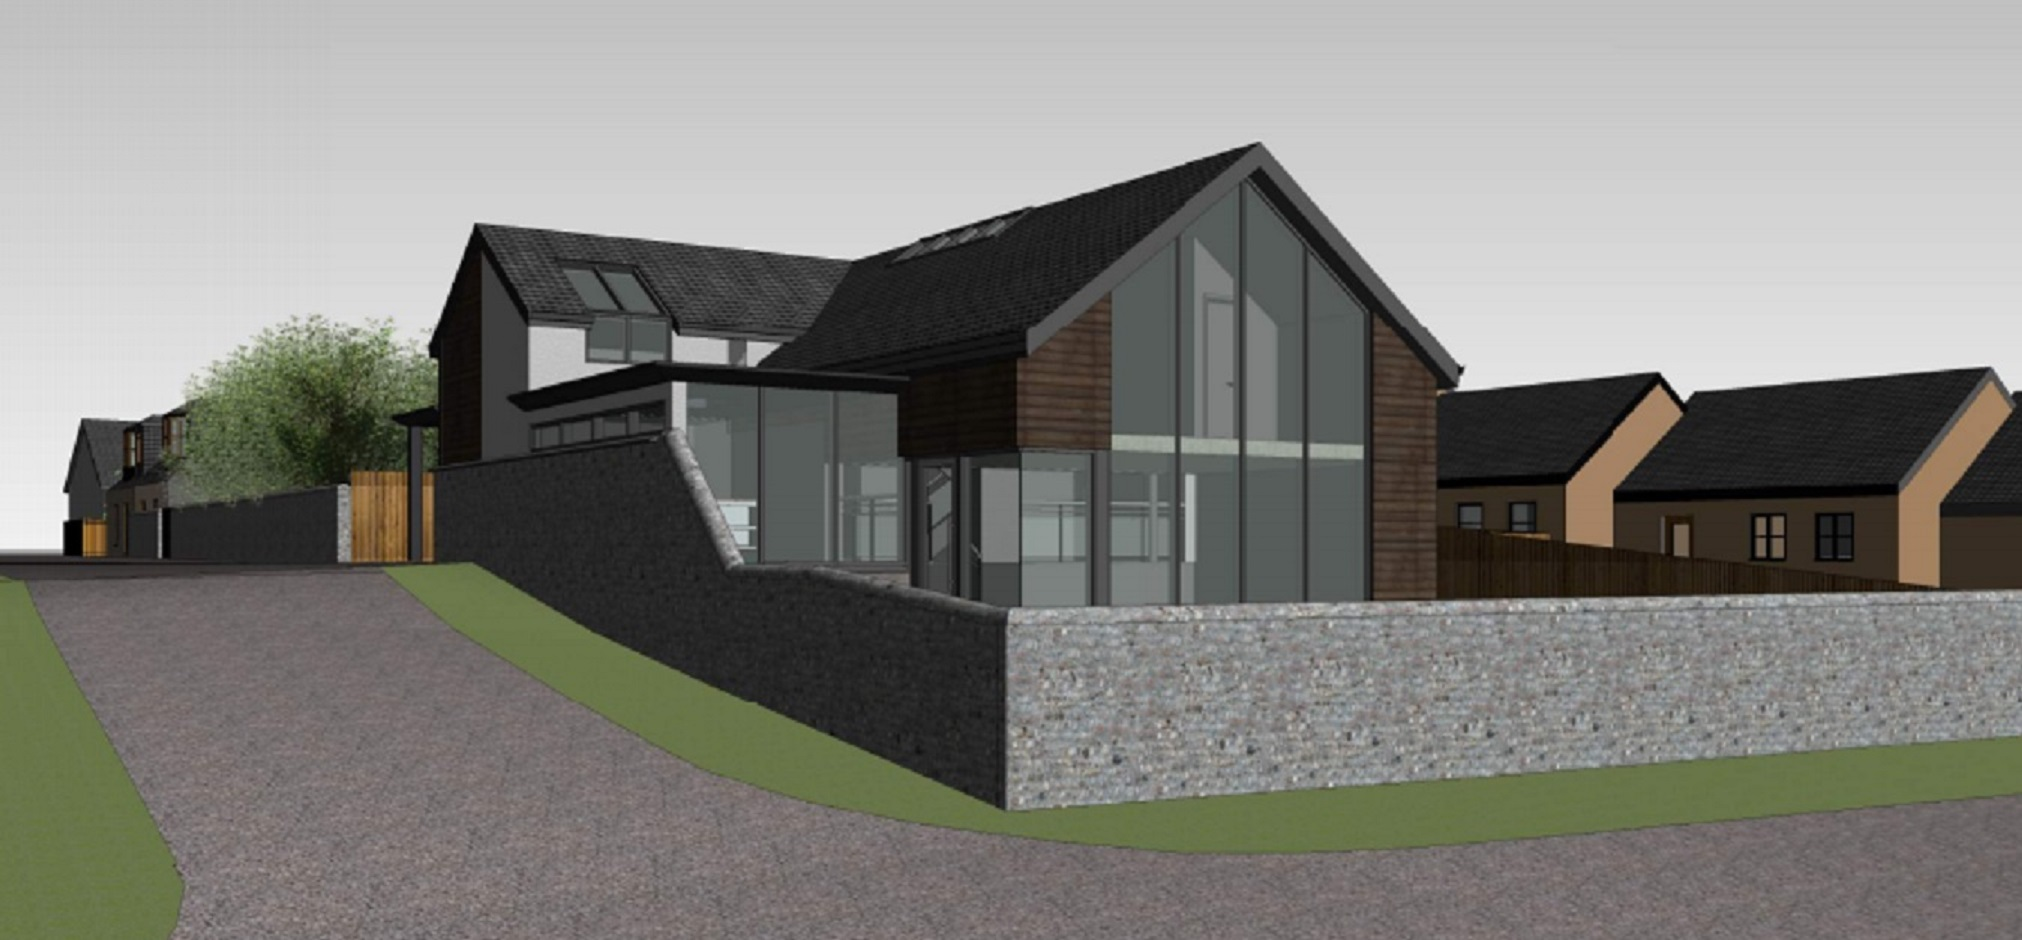 An architect's impression of the extended seafront bungalow